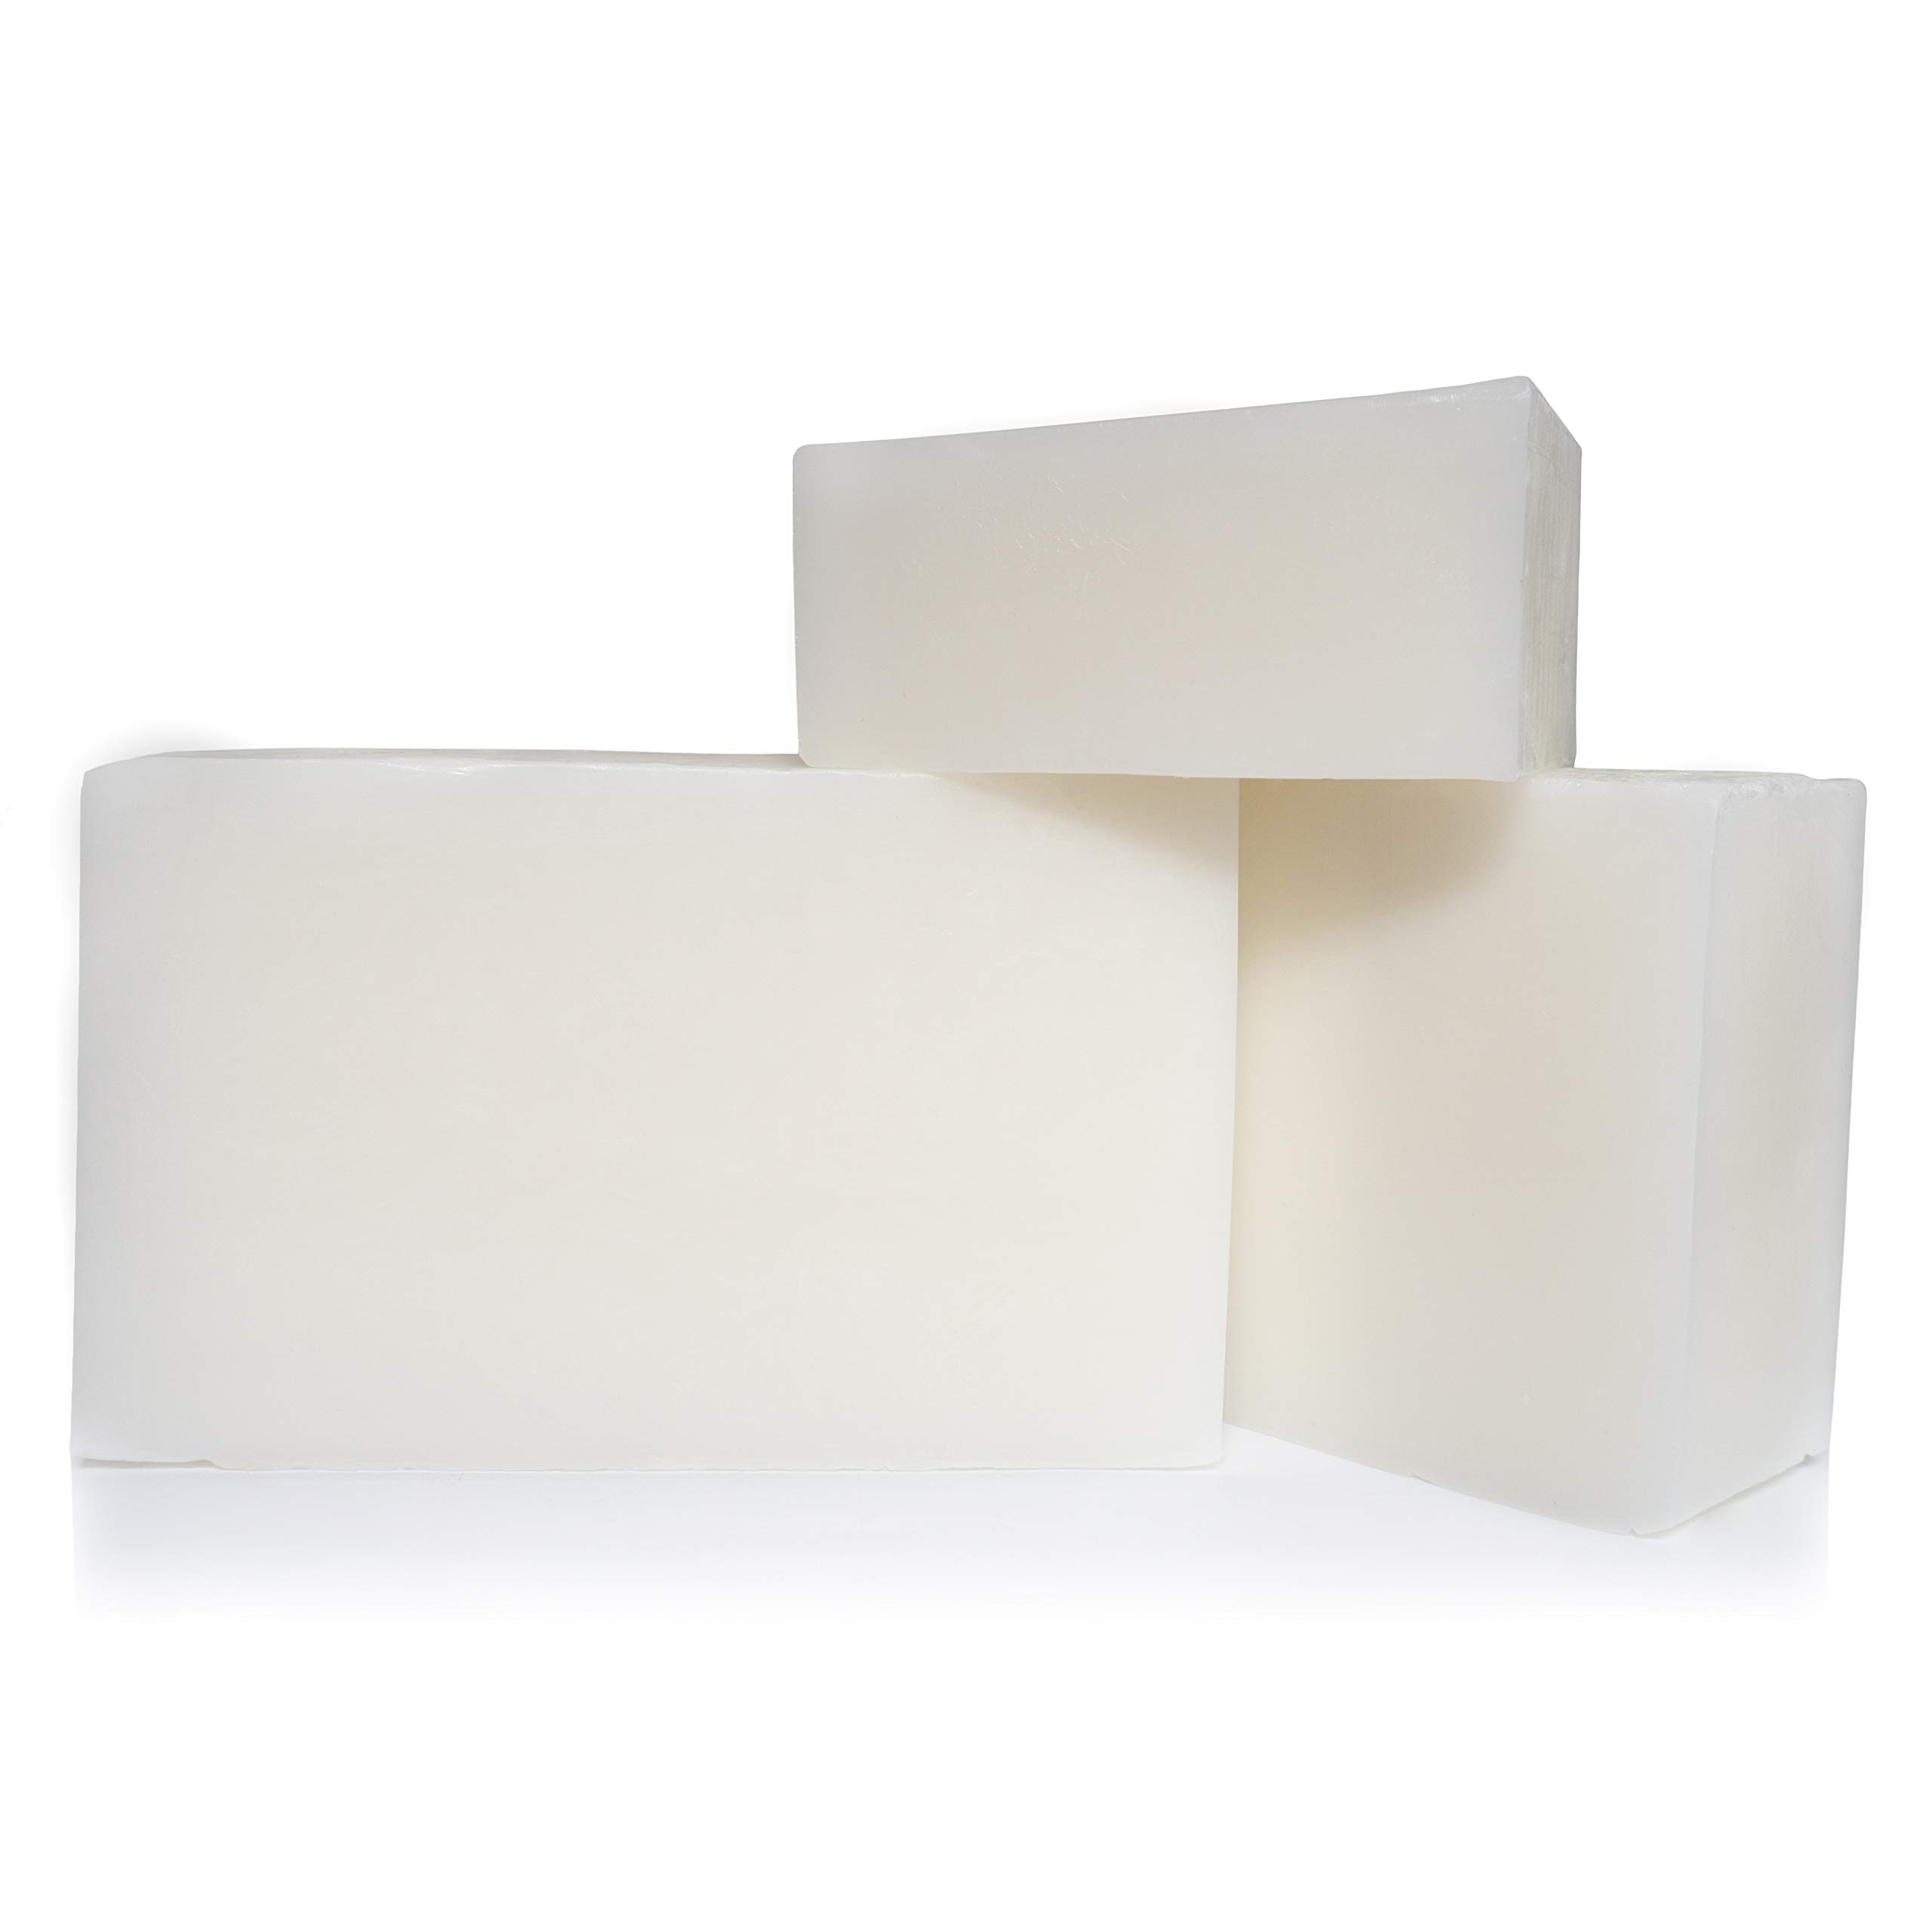 10 LB - White Melt and Pour Soap Base by Velona | Natural Bars for The Best Result for Soap-Making